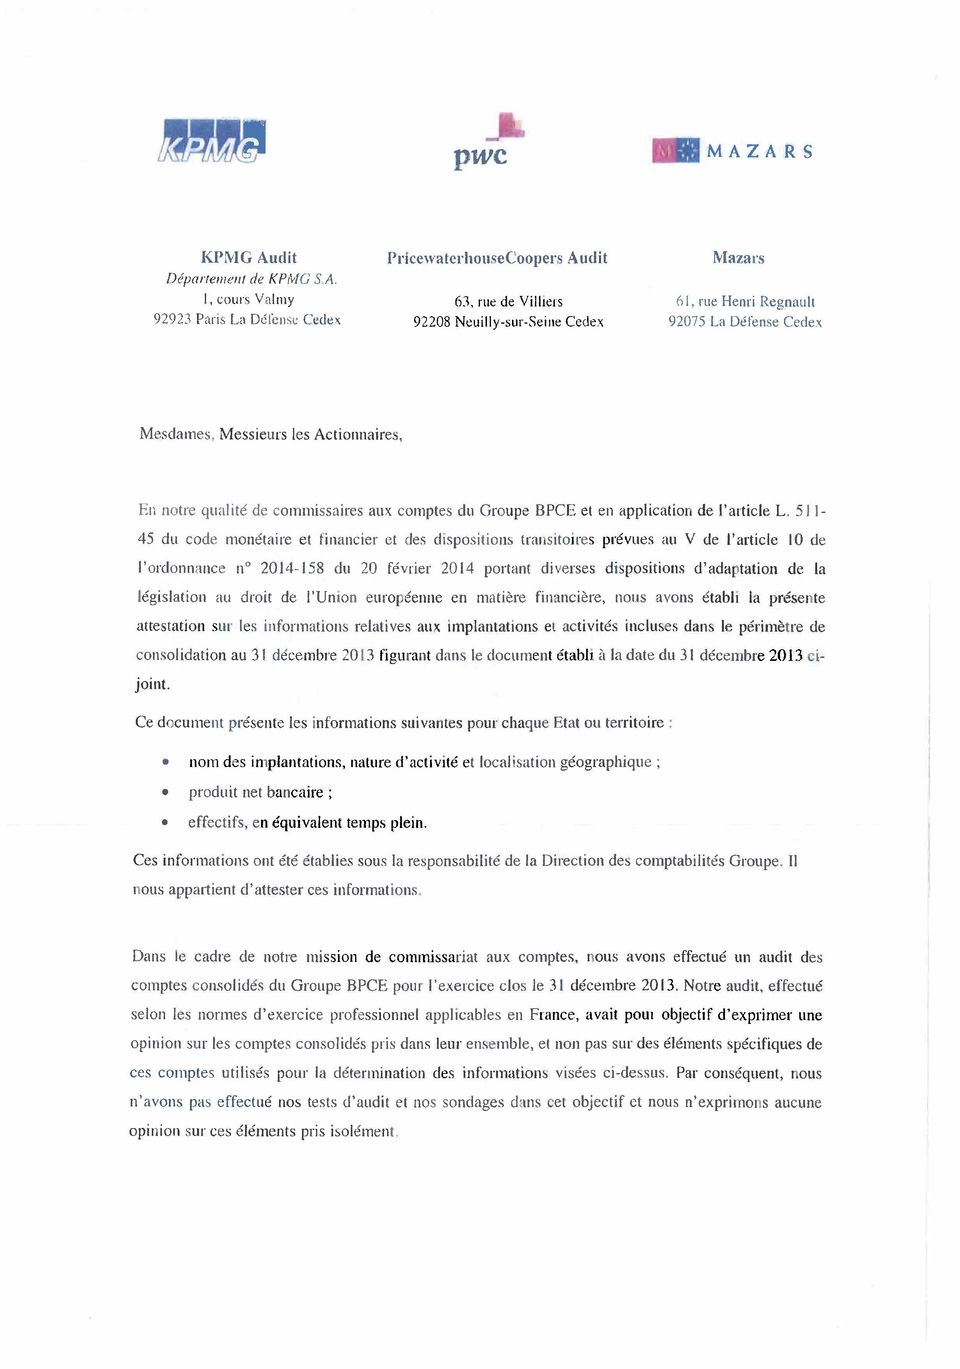 511-45 du code monétaire et financier et (les dispositions transitoires prévues au V de l'article 10 de l'ordonnance u 2014-158 du 20 février 2014 portant diverses dispositions d'adaptation de la